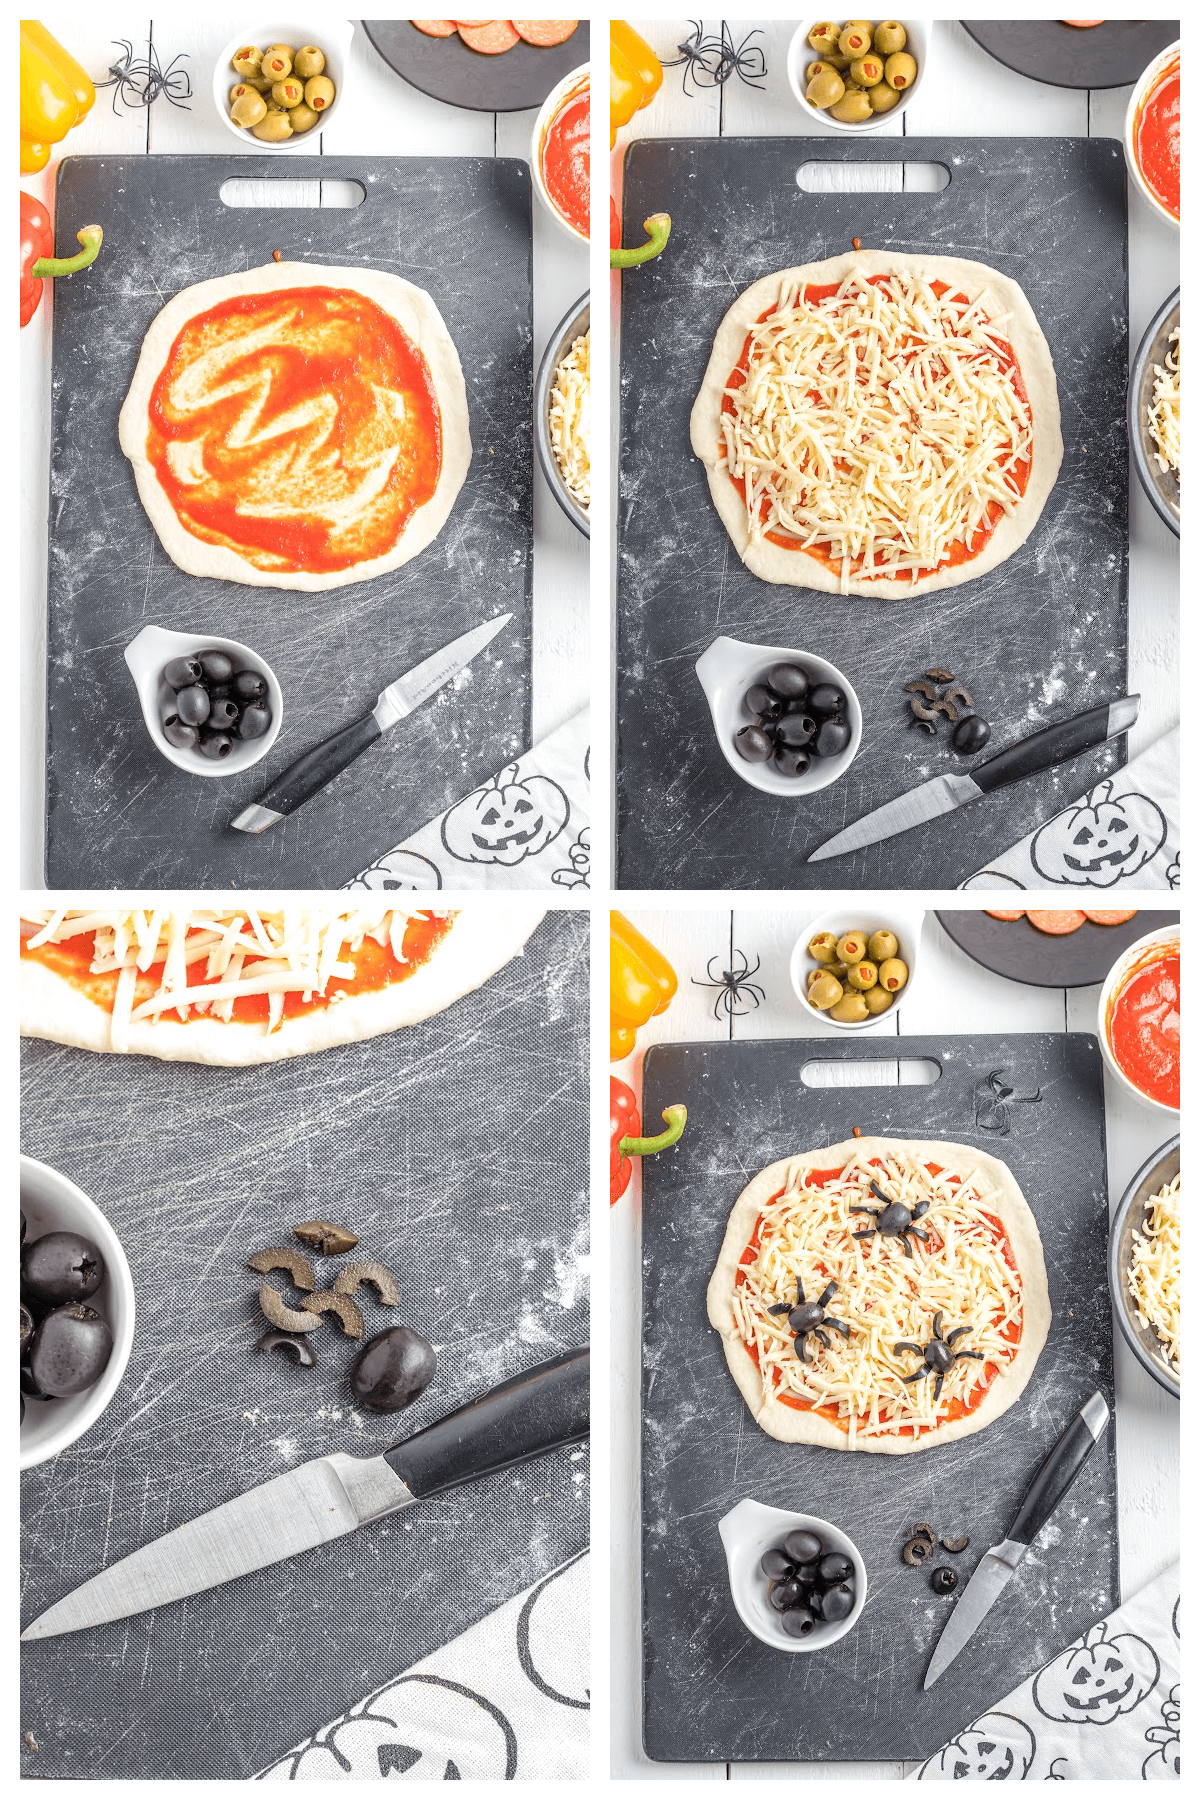 Spiders on mini-pizzas for a Halloween Party Pizza.